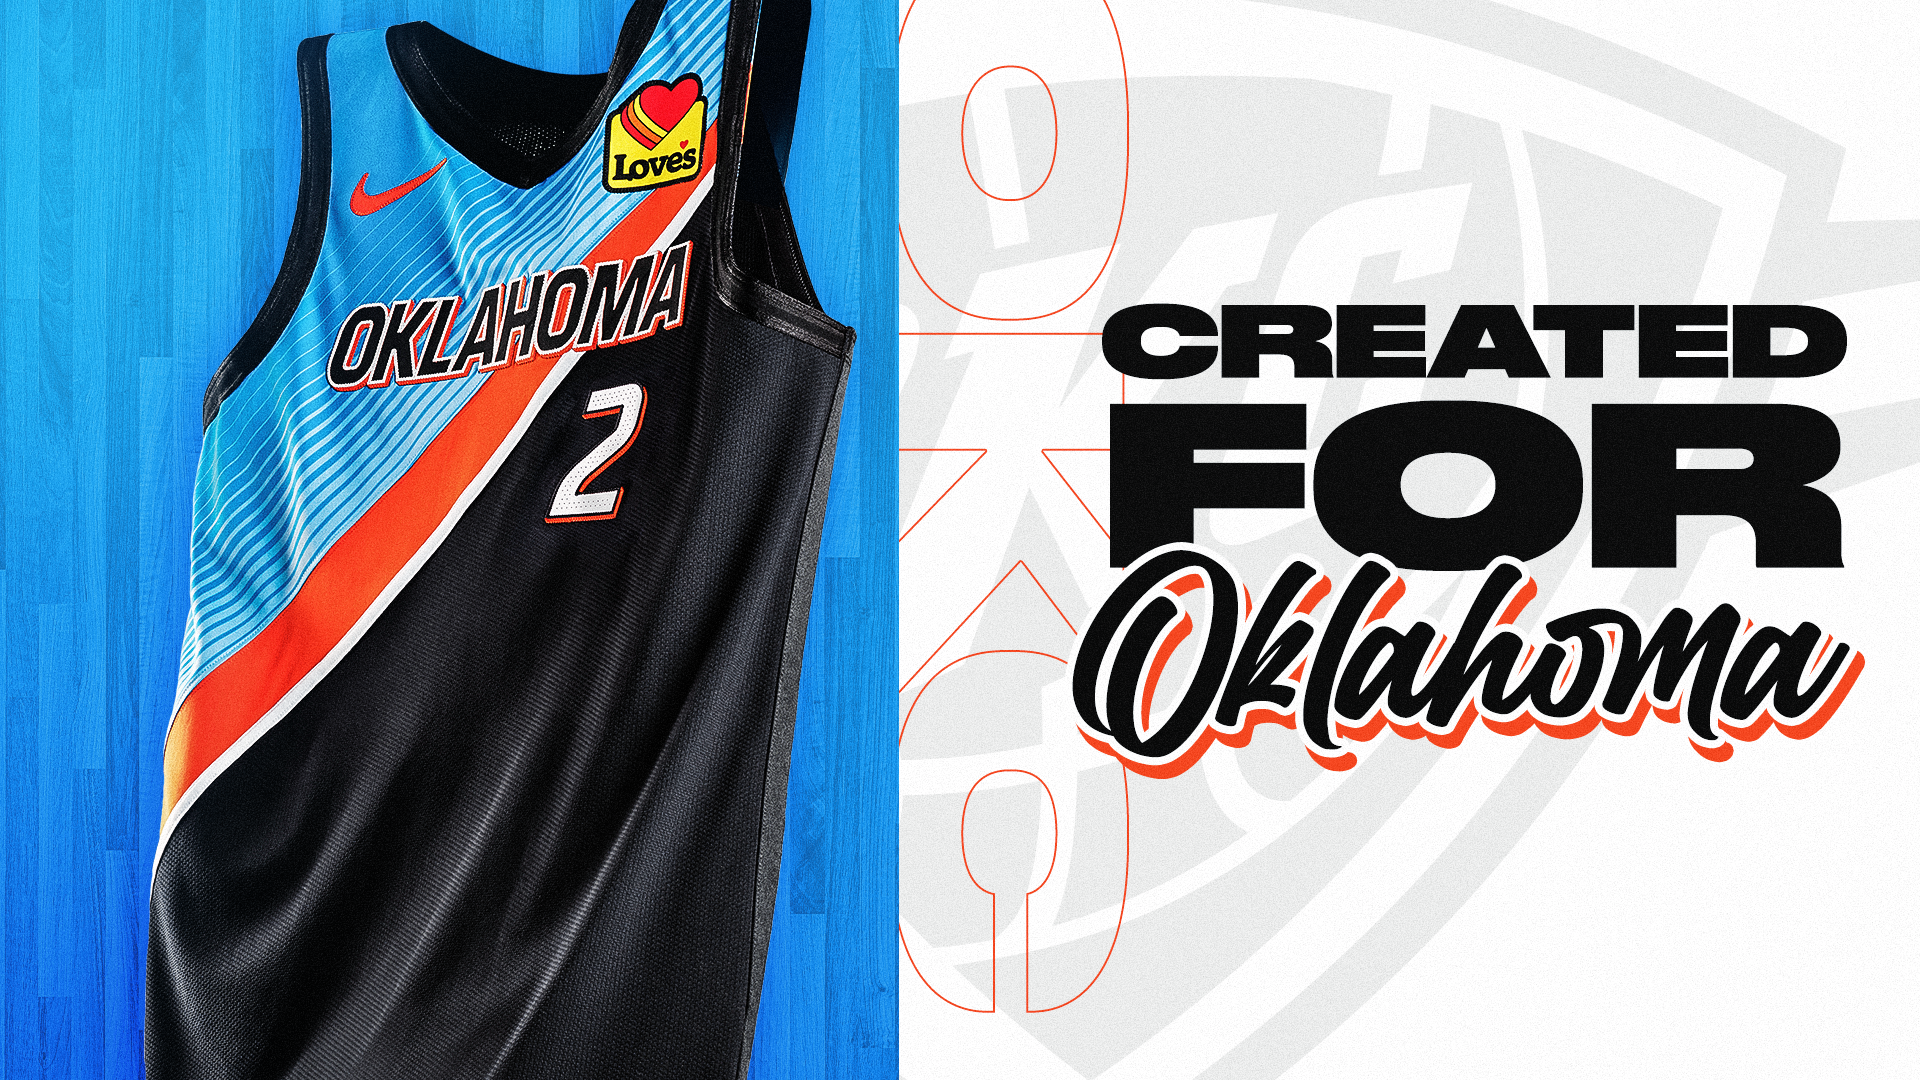 Oklahoma City Thunder: Created For Oklahoma